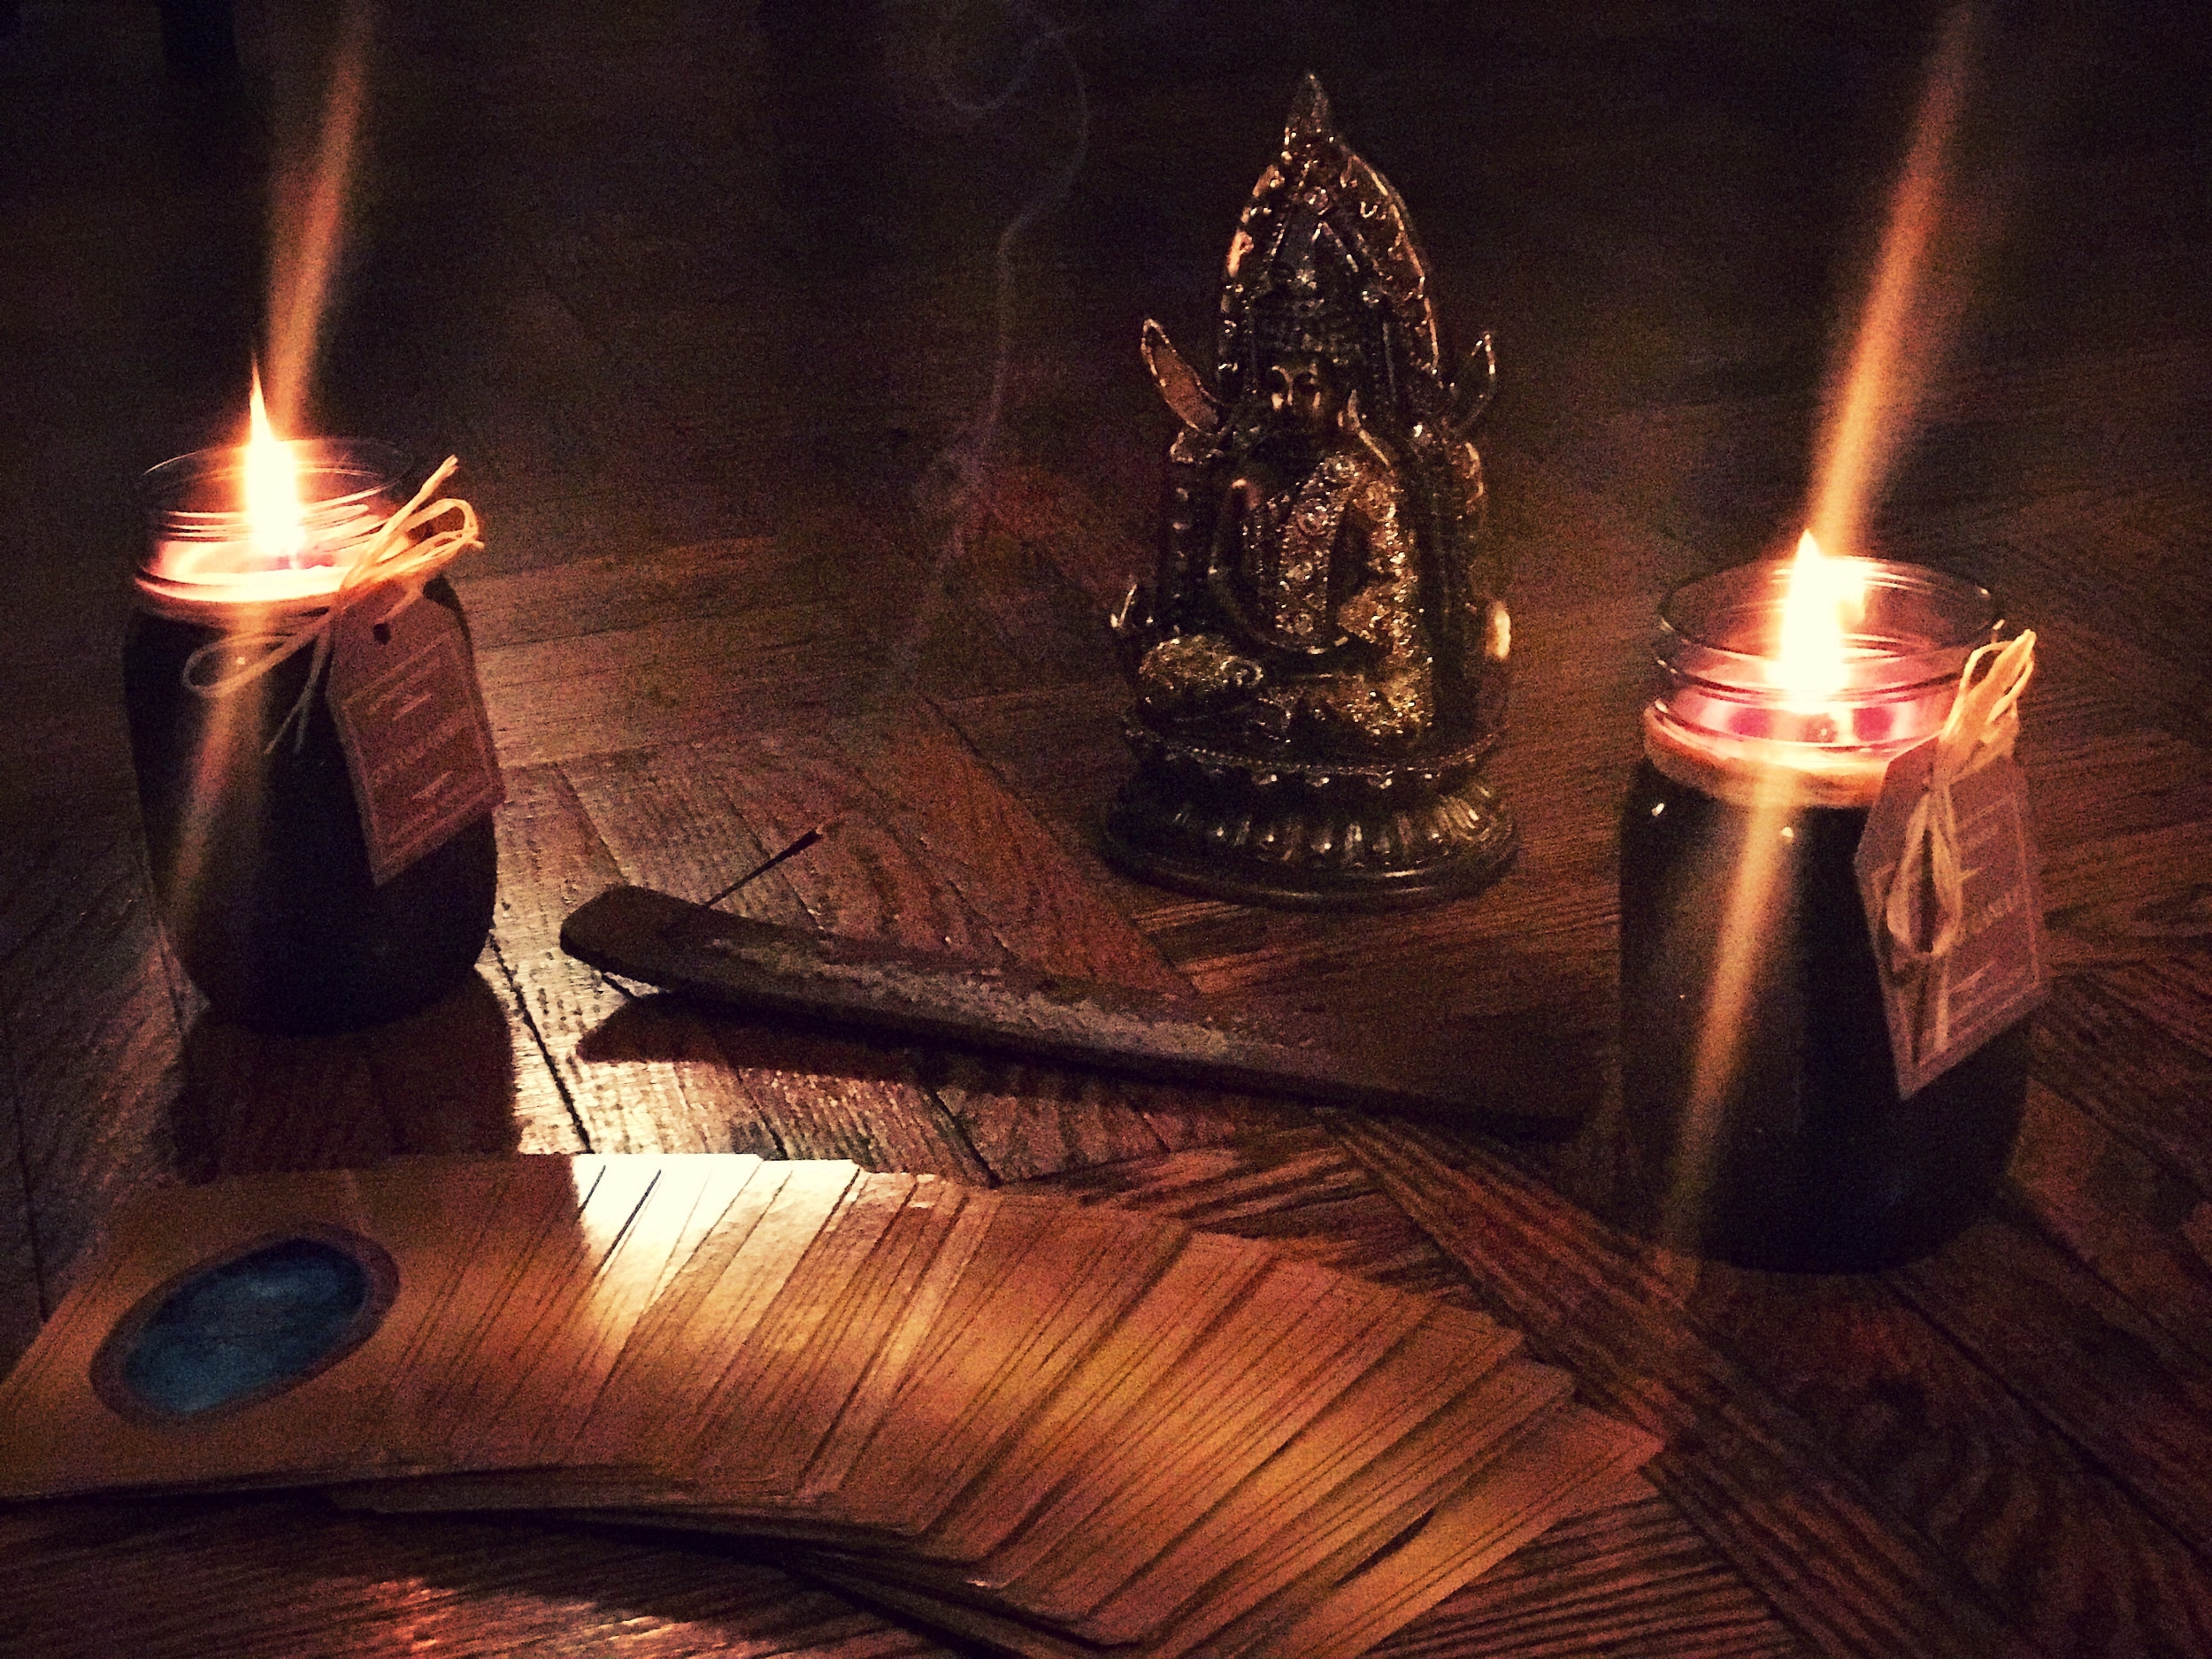 Candle Flames - And how fire connects to the divine.